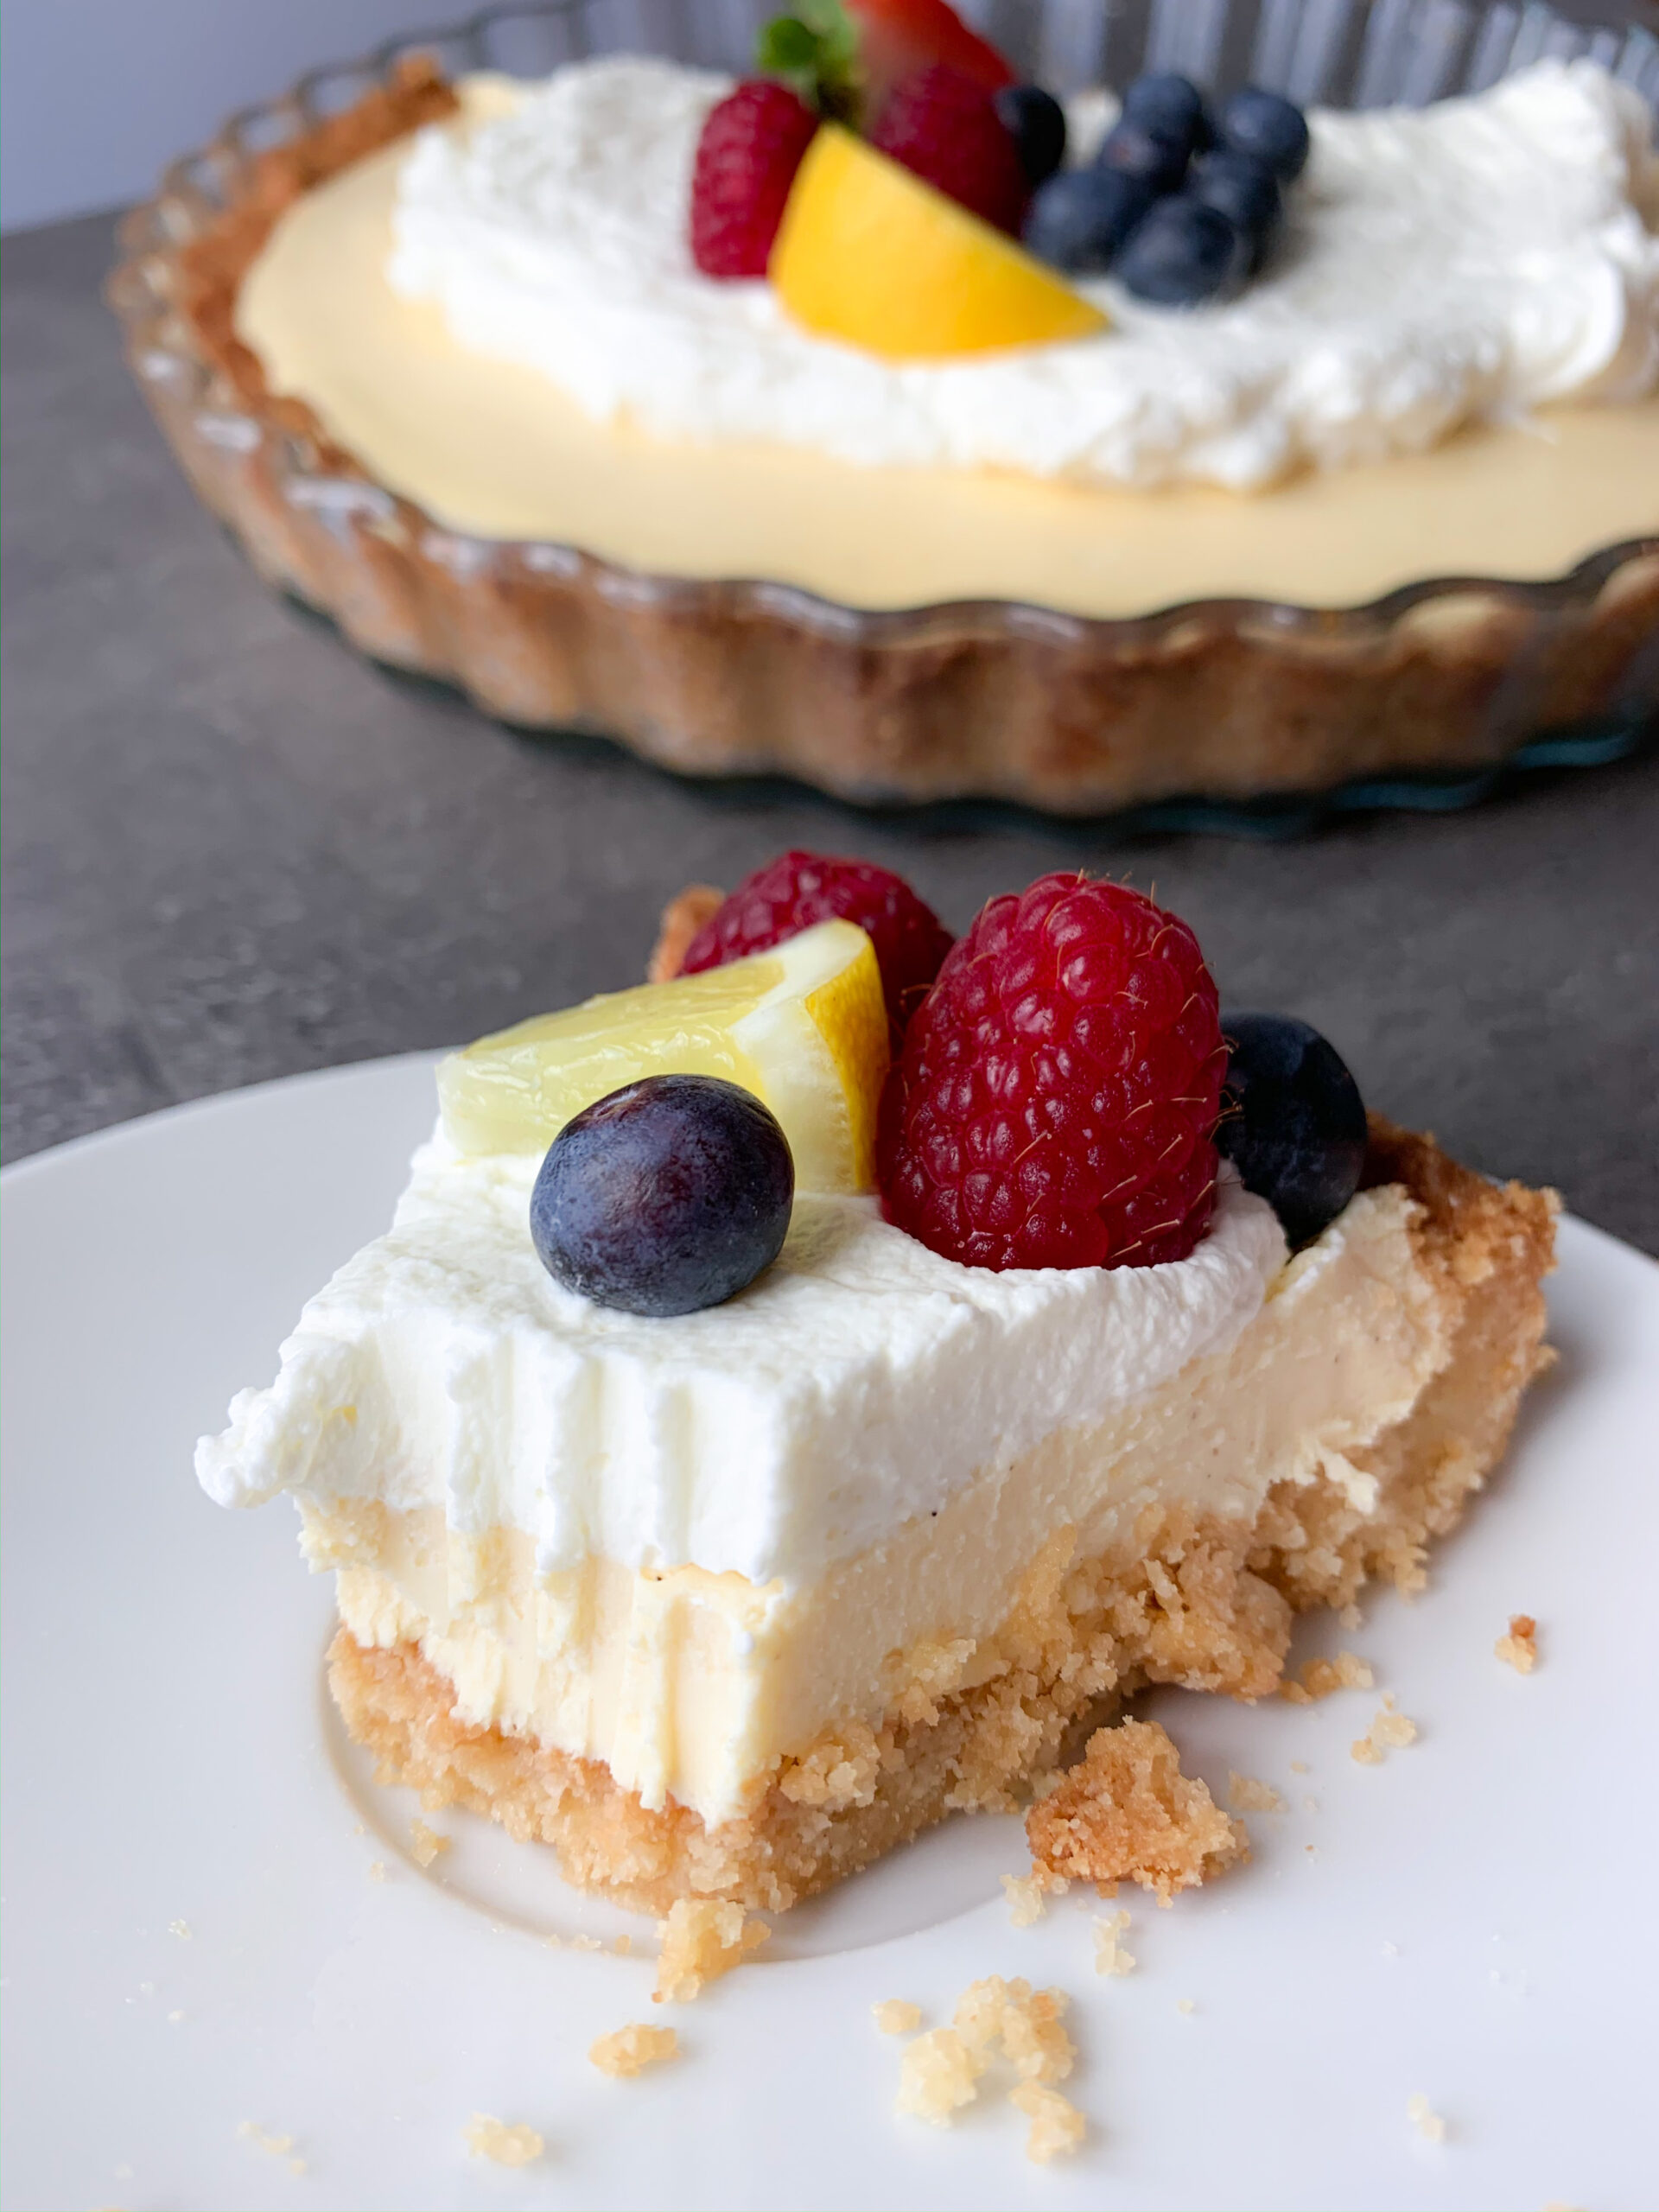 Picture of a slice of low carb lemon pie